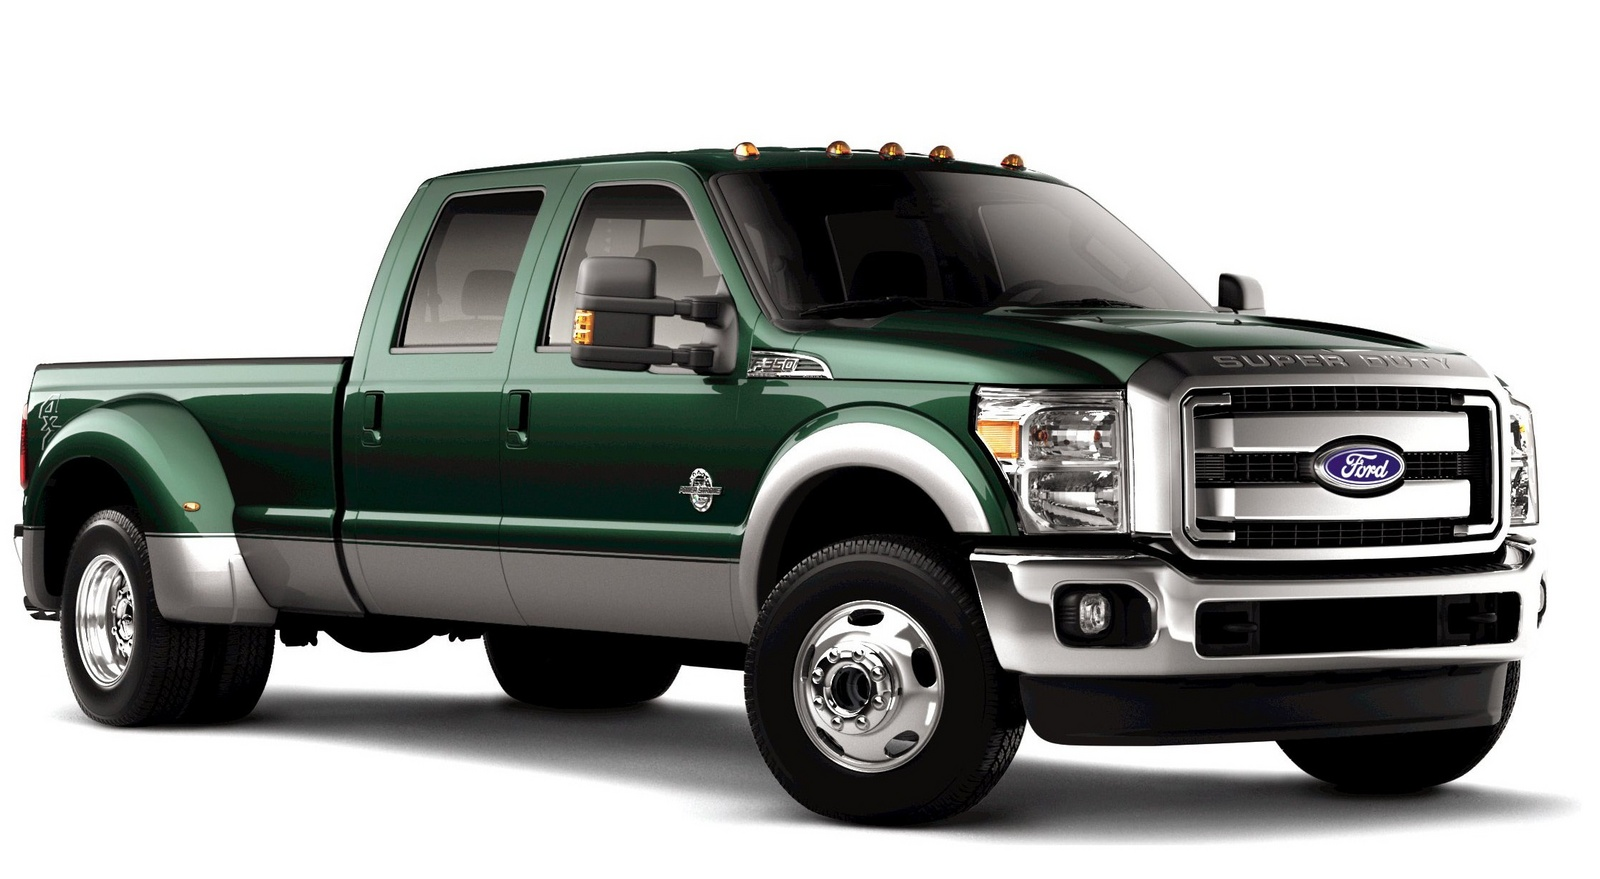 Ford F-350 #6